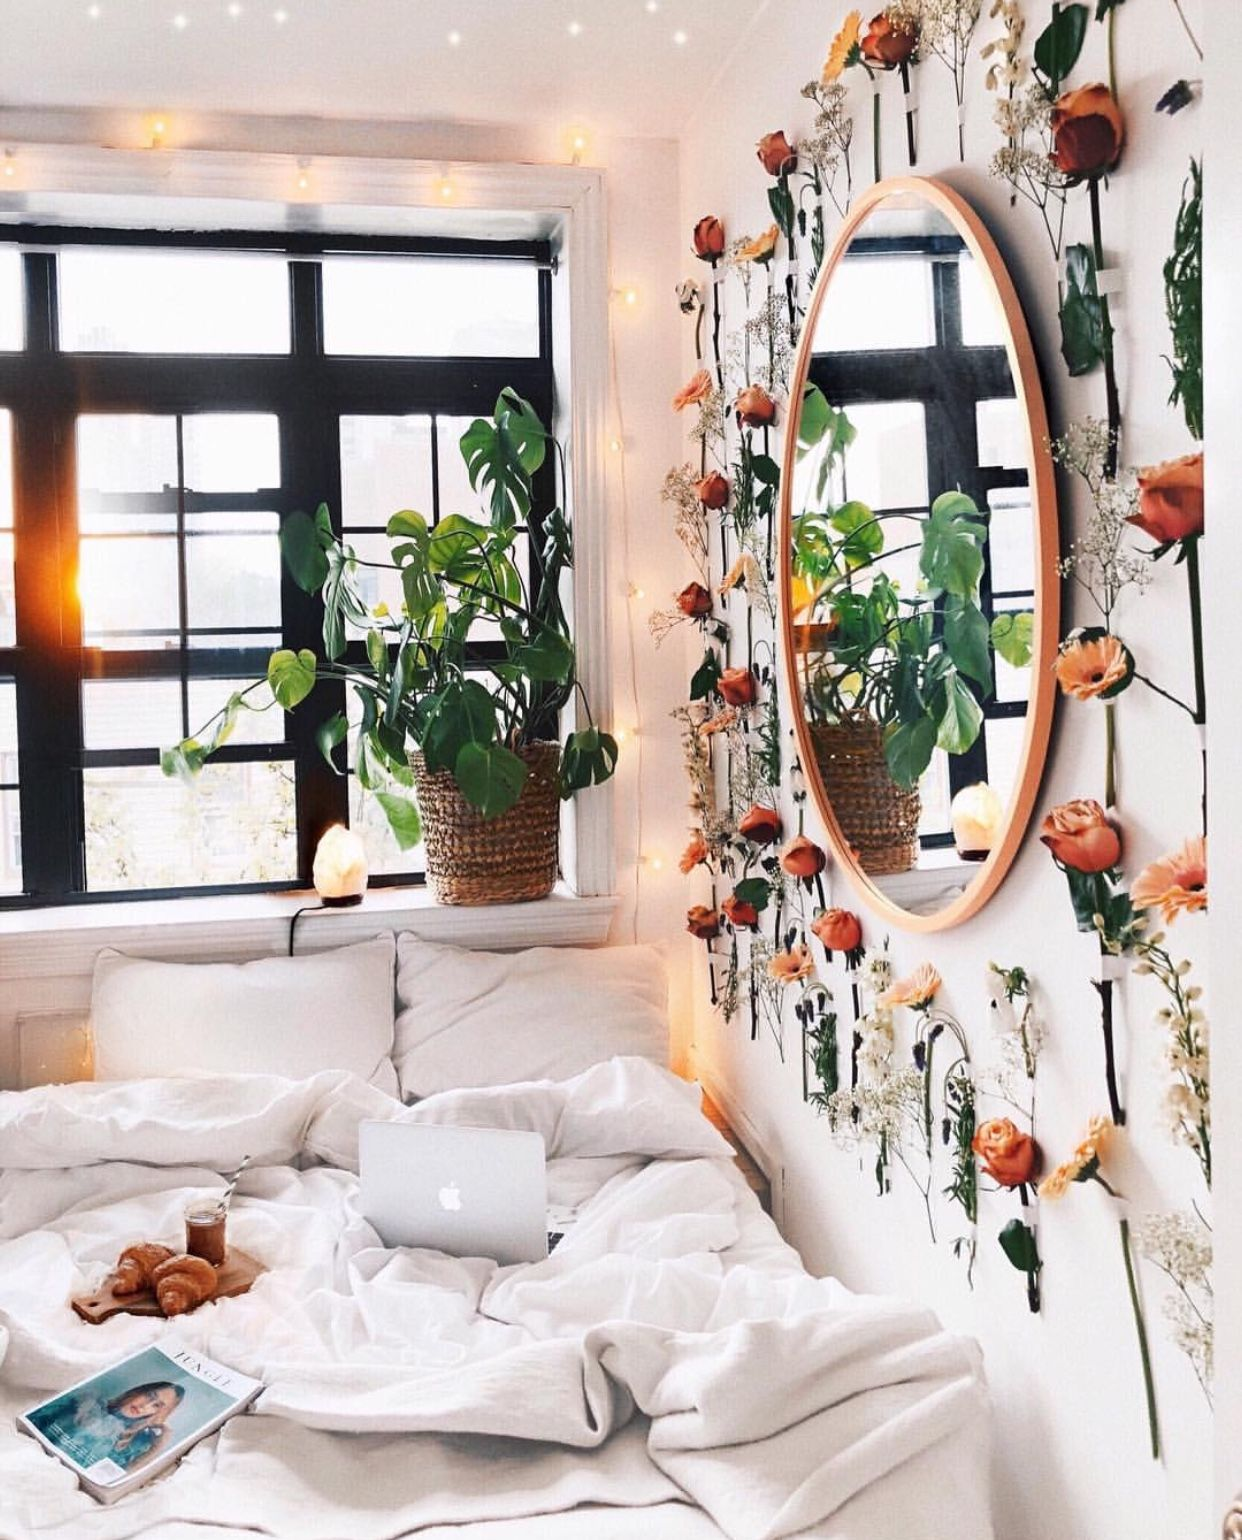 pinterest ✰ emmamills5 in 2019 | Home decor, Aesthetic ... on